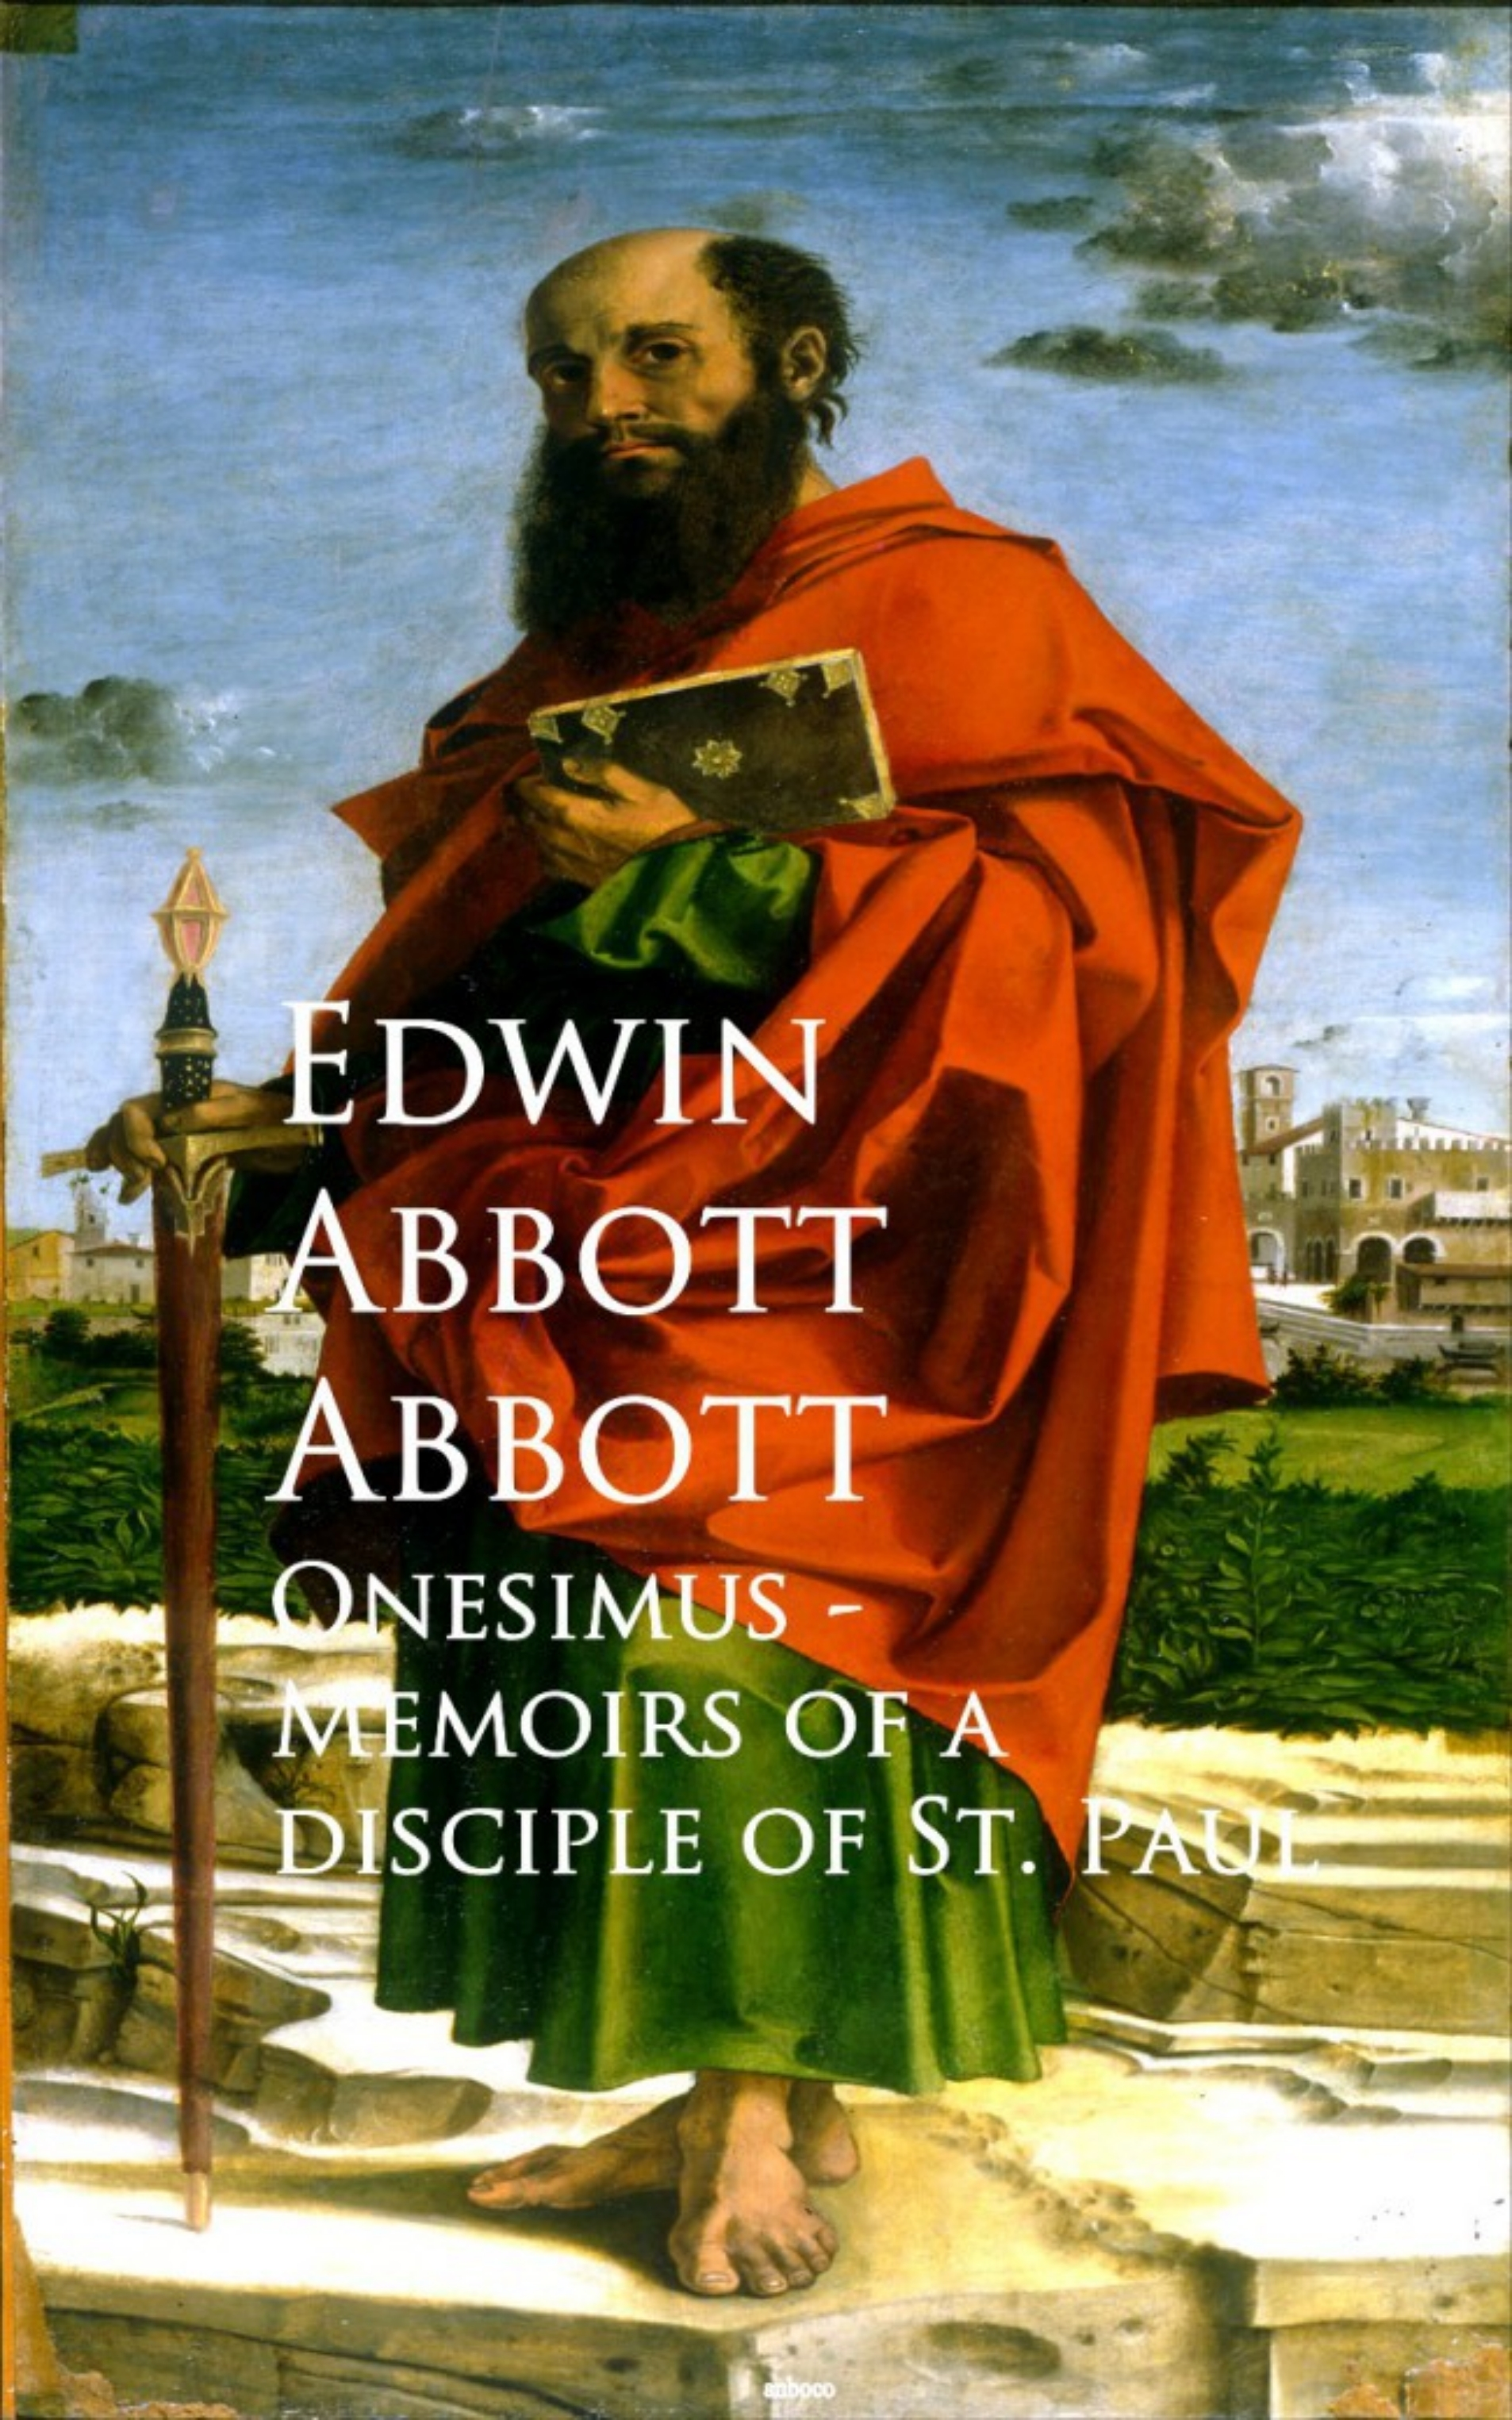 Edwin Abbott Abbott Onesimus - Memoirs of a Disciple of St. Paul abbott ensure 900g